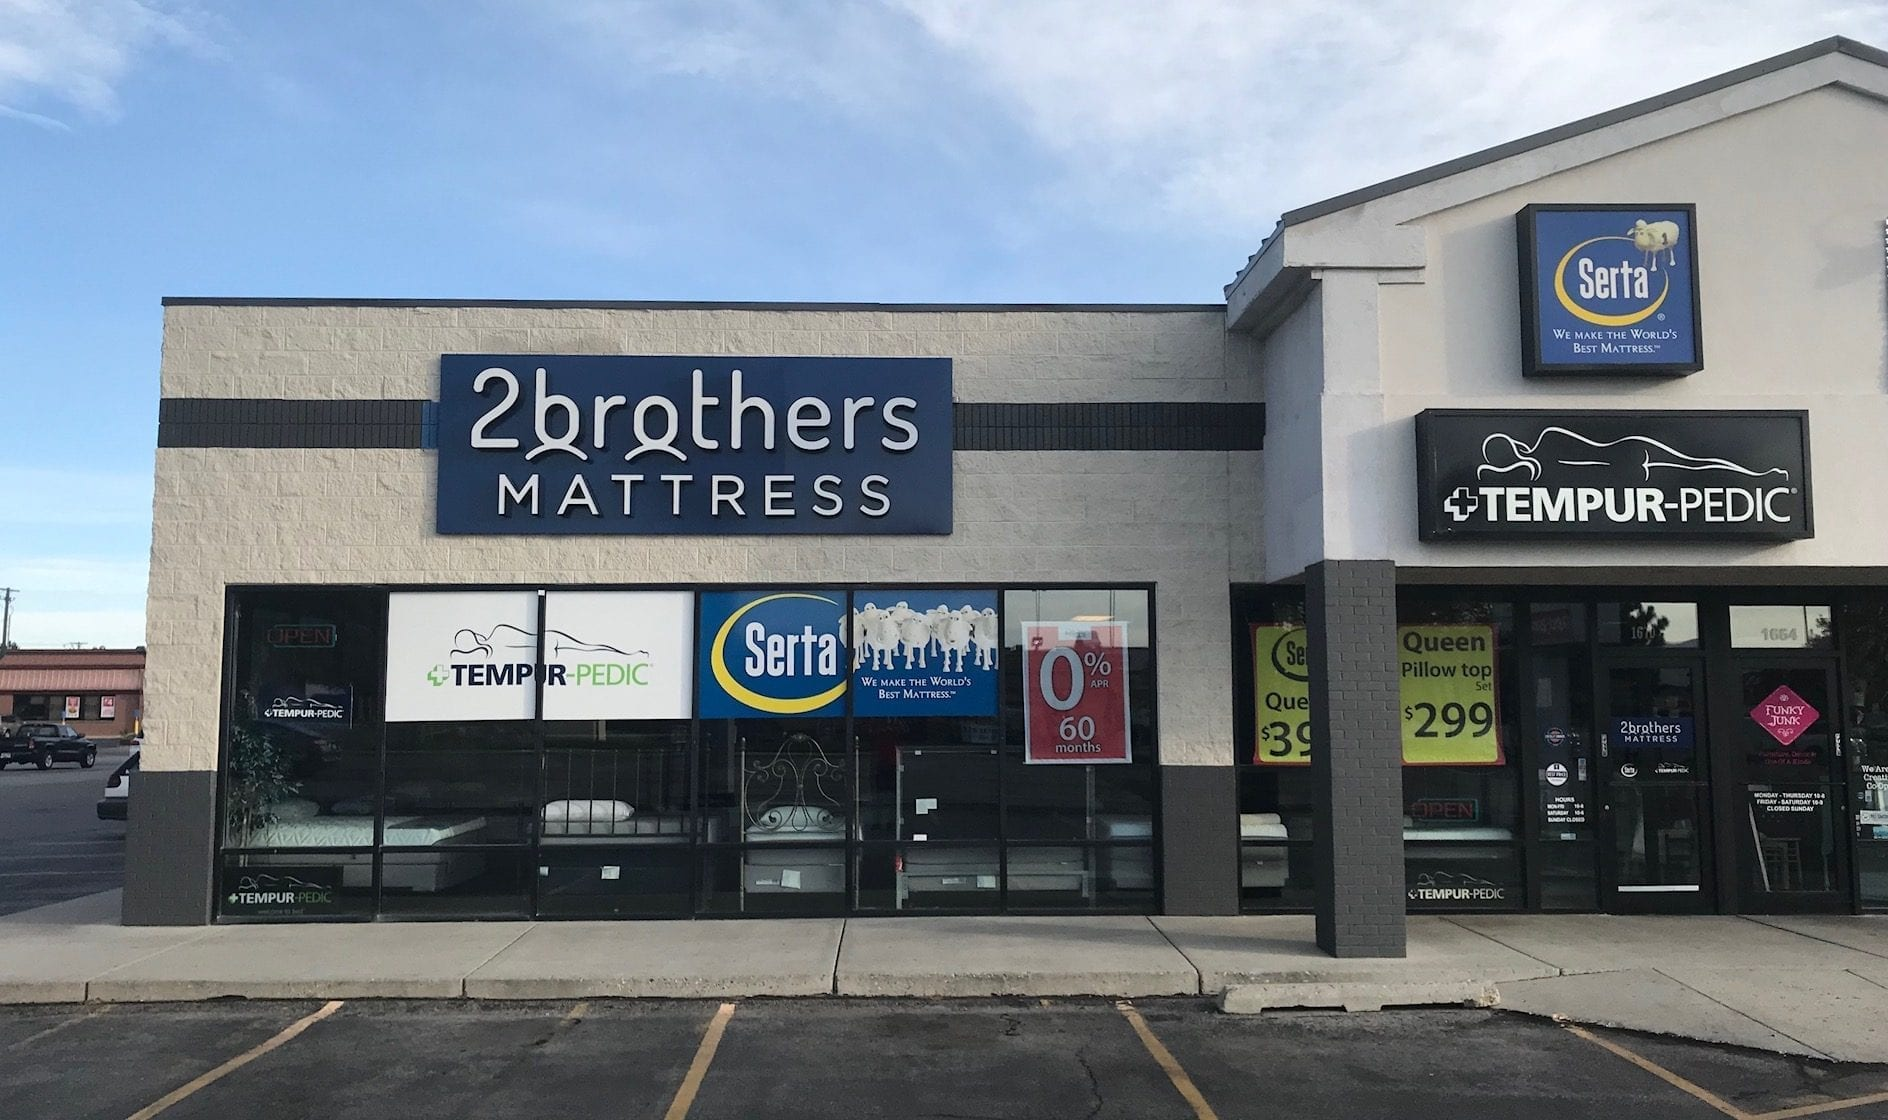 Mattress Store In West Jordan 2 Brothers Mattress